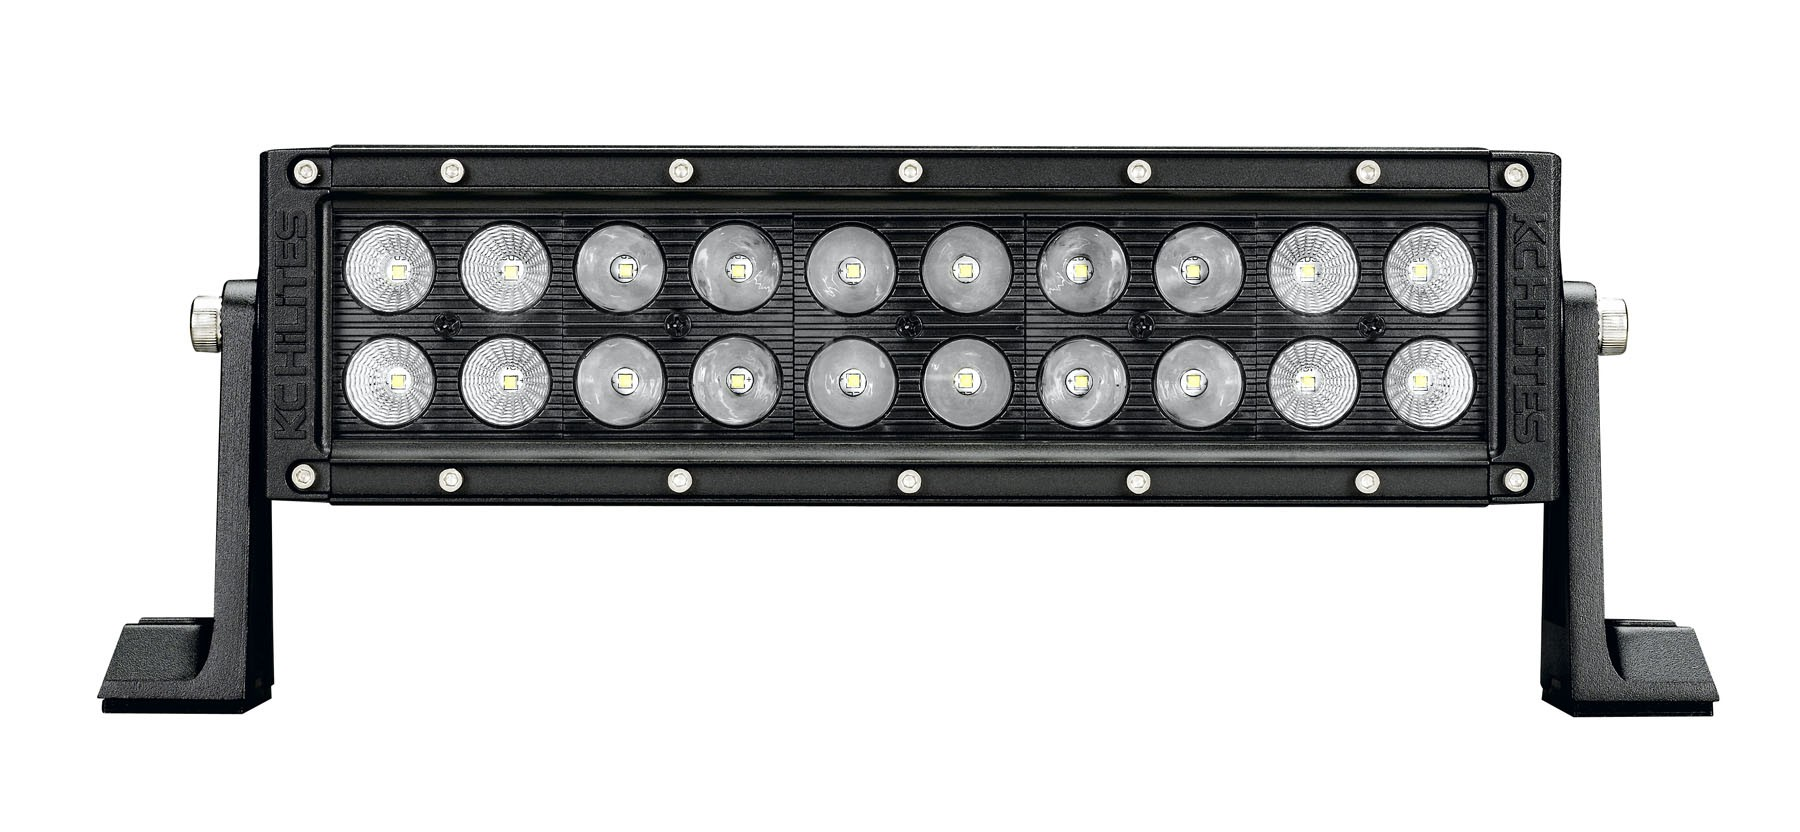 "KC Hilites C SERIES 10"" LEd Light Bar"